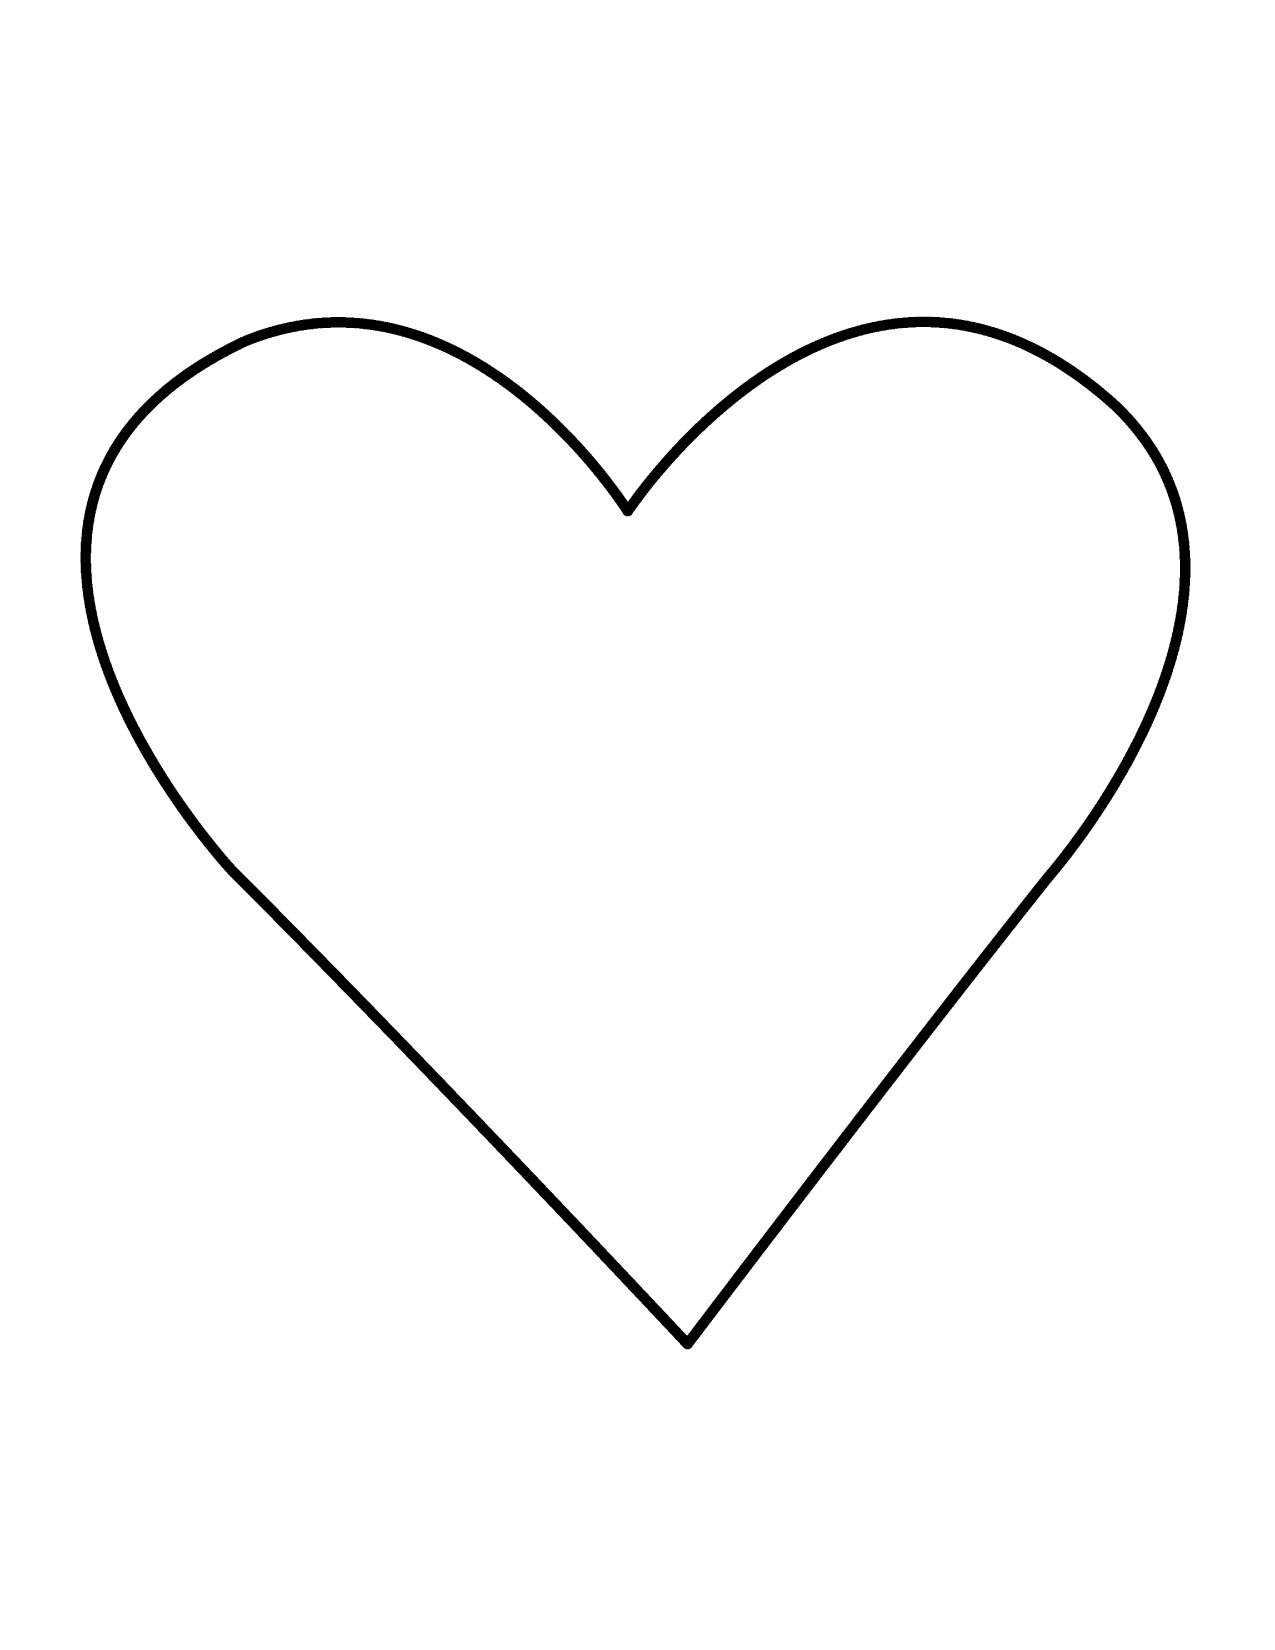 Clip Art Line Of Hearts : Heart clipart panda free images